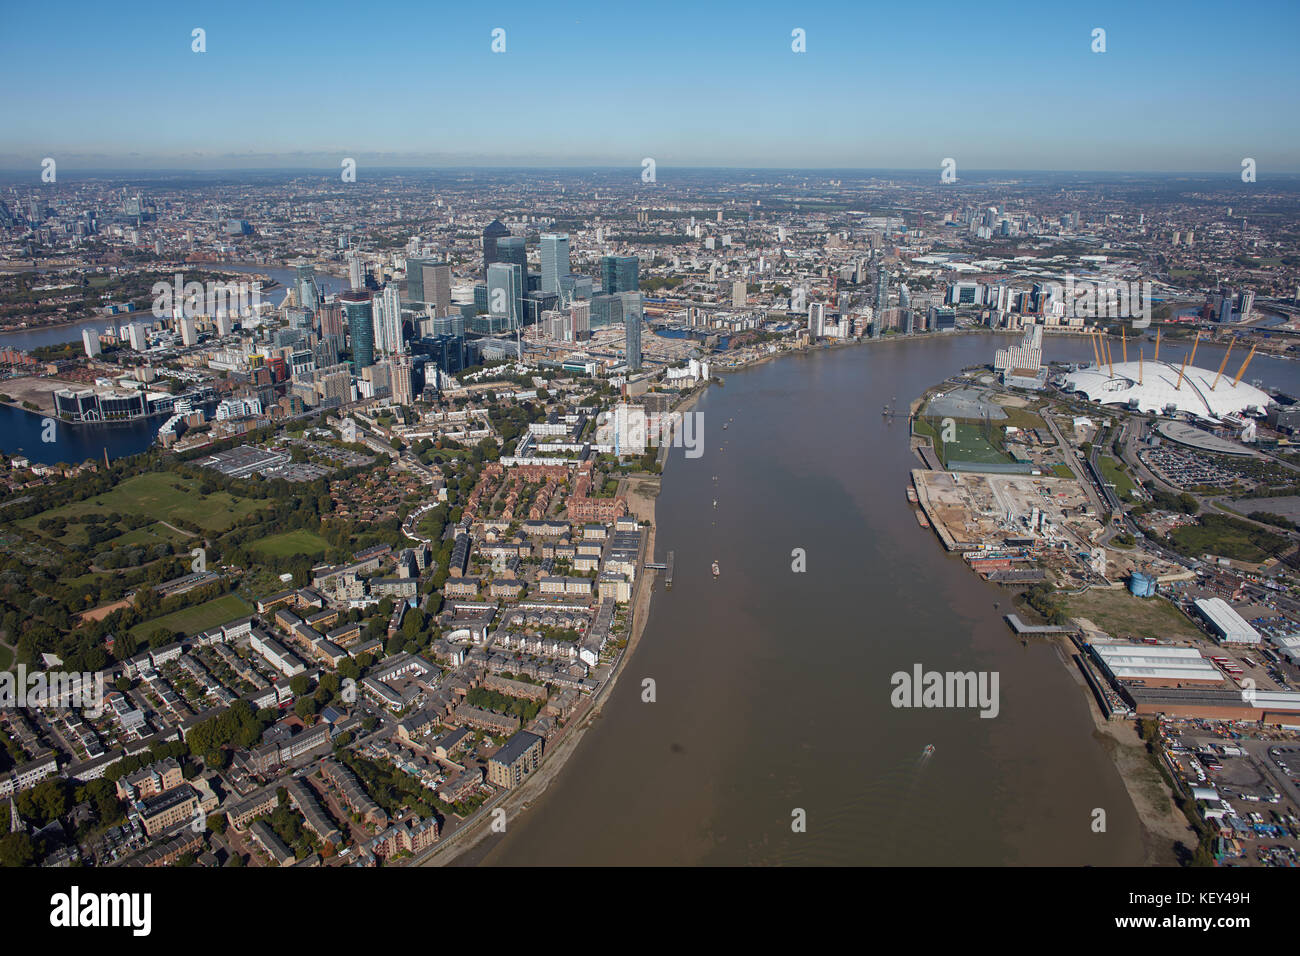 An aerial view from the River Thames showing the Isle of Dogs and the O2 Arena - Stock Image